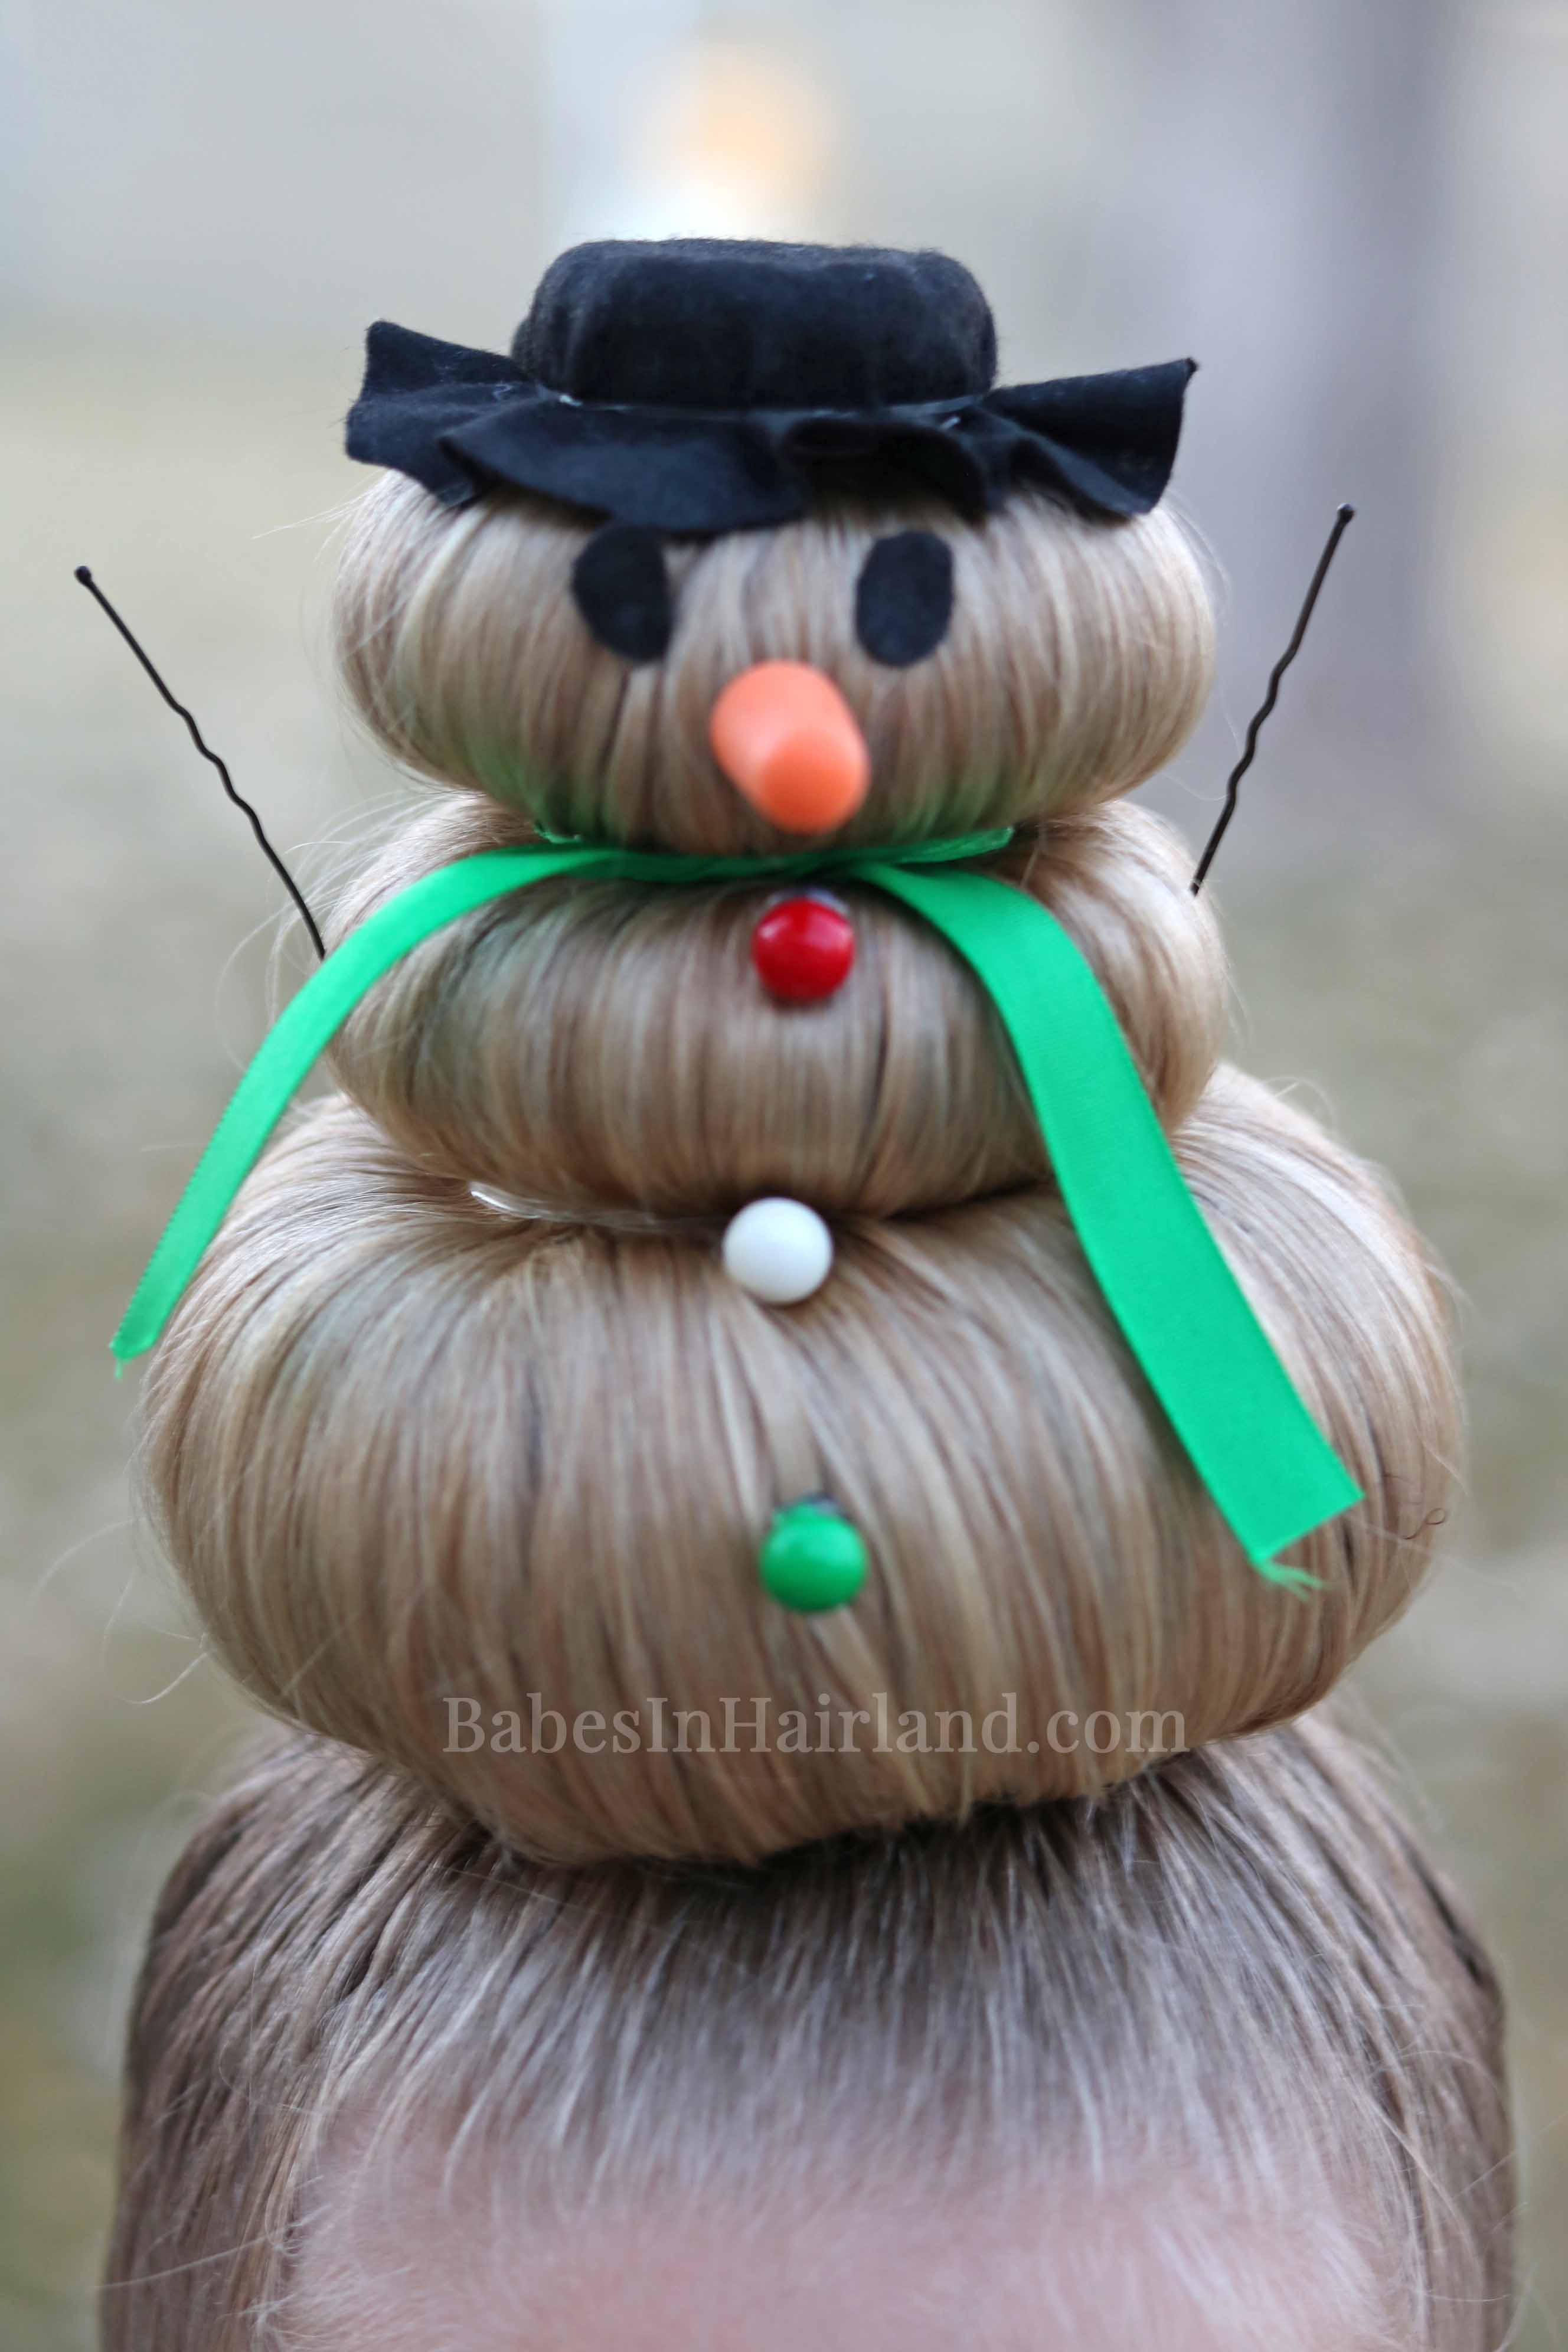 Snowman Hairstyle For Crazy Hair Day (or Christmas